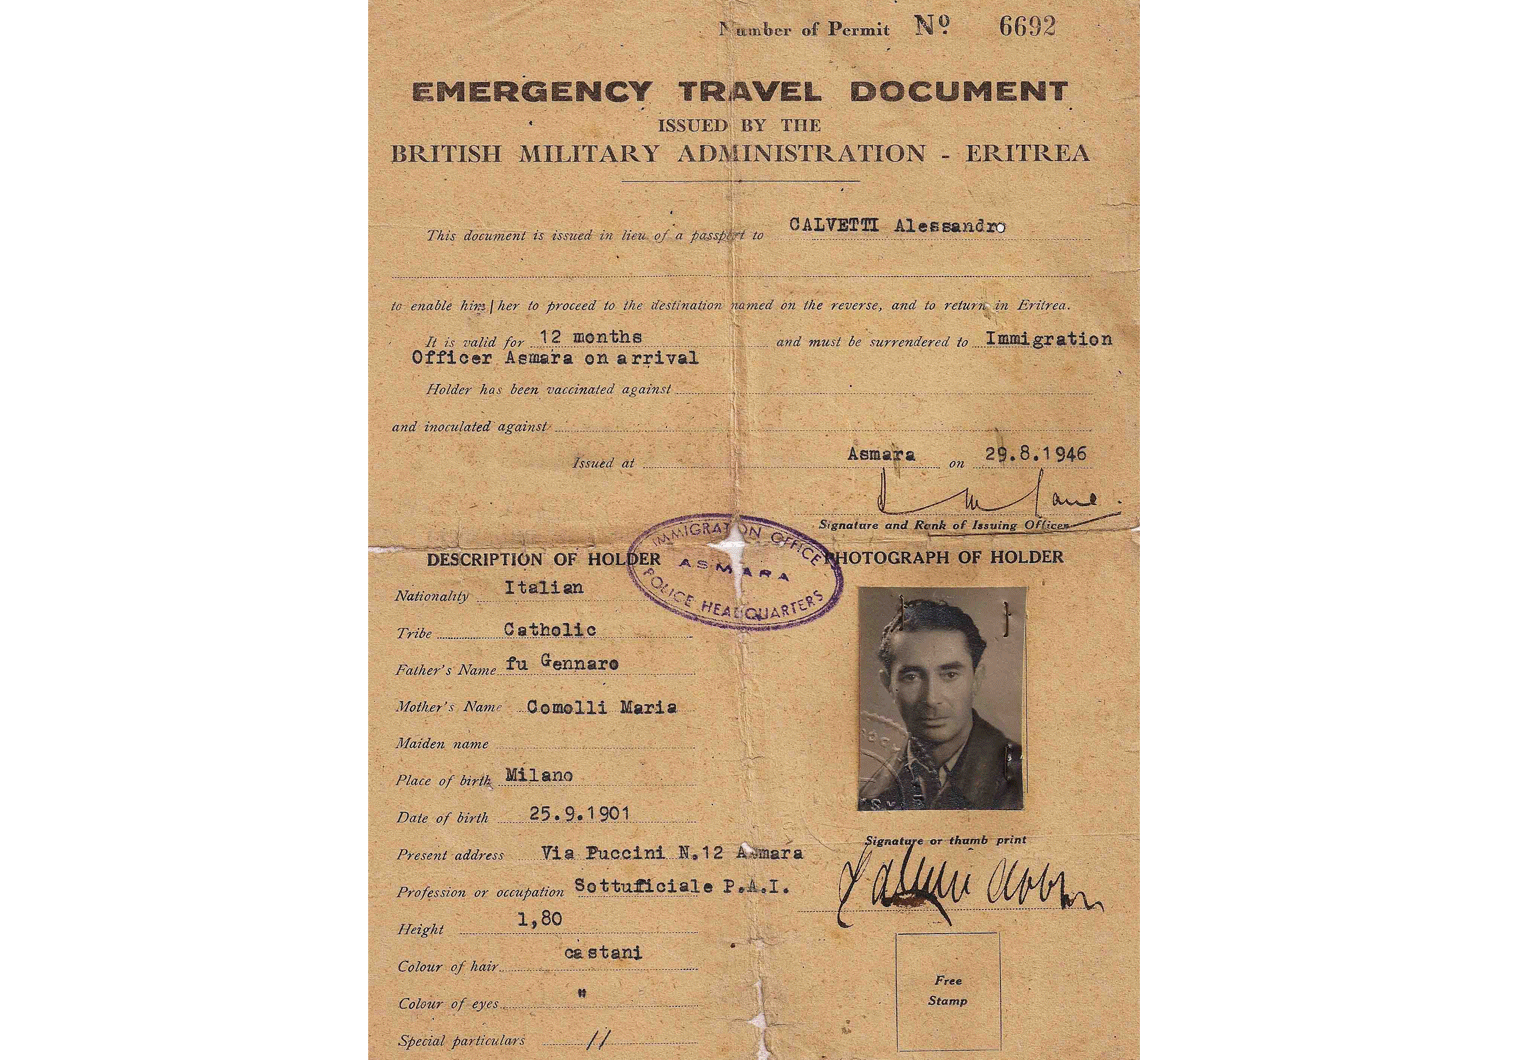 British military administration travel document